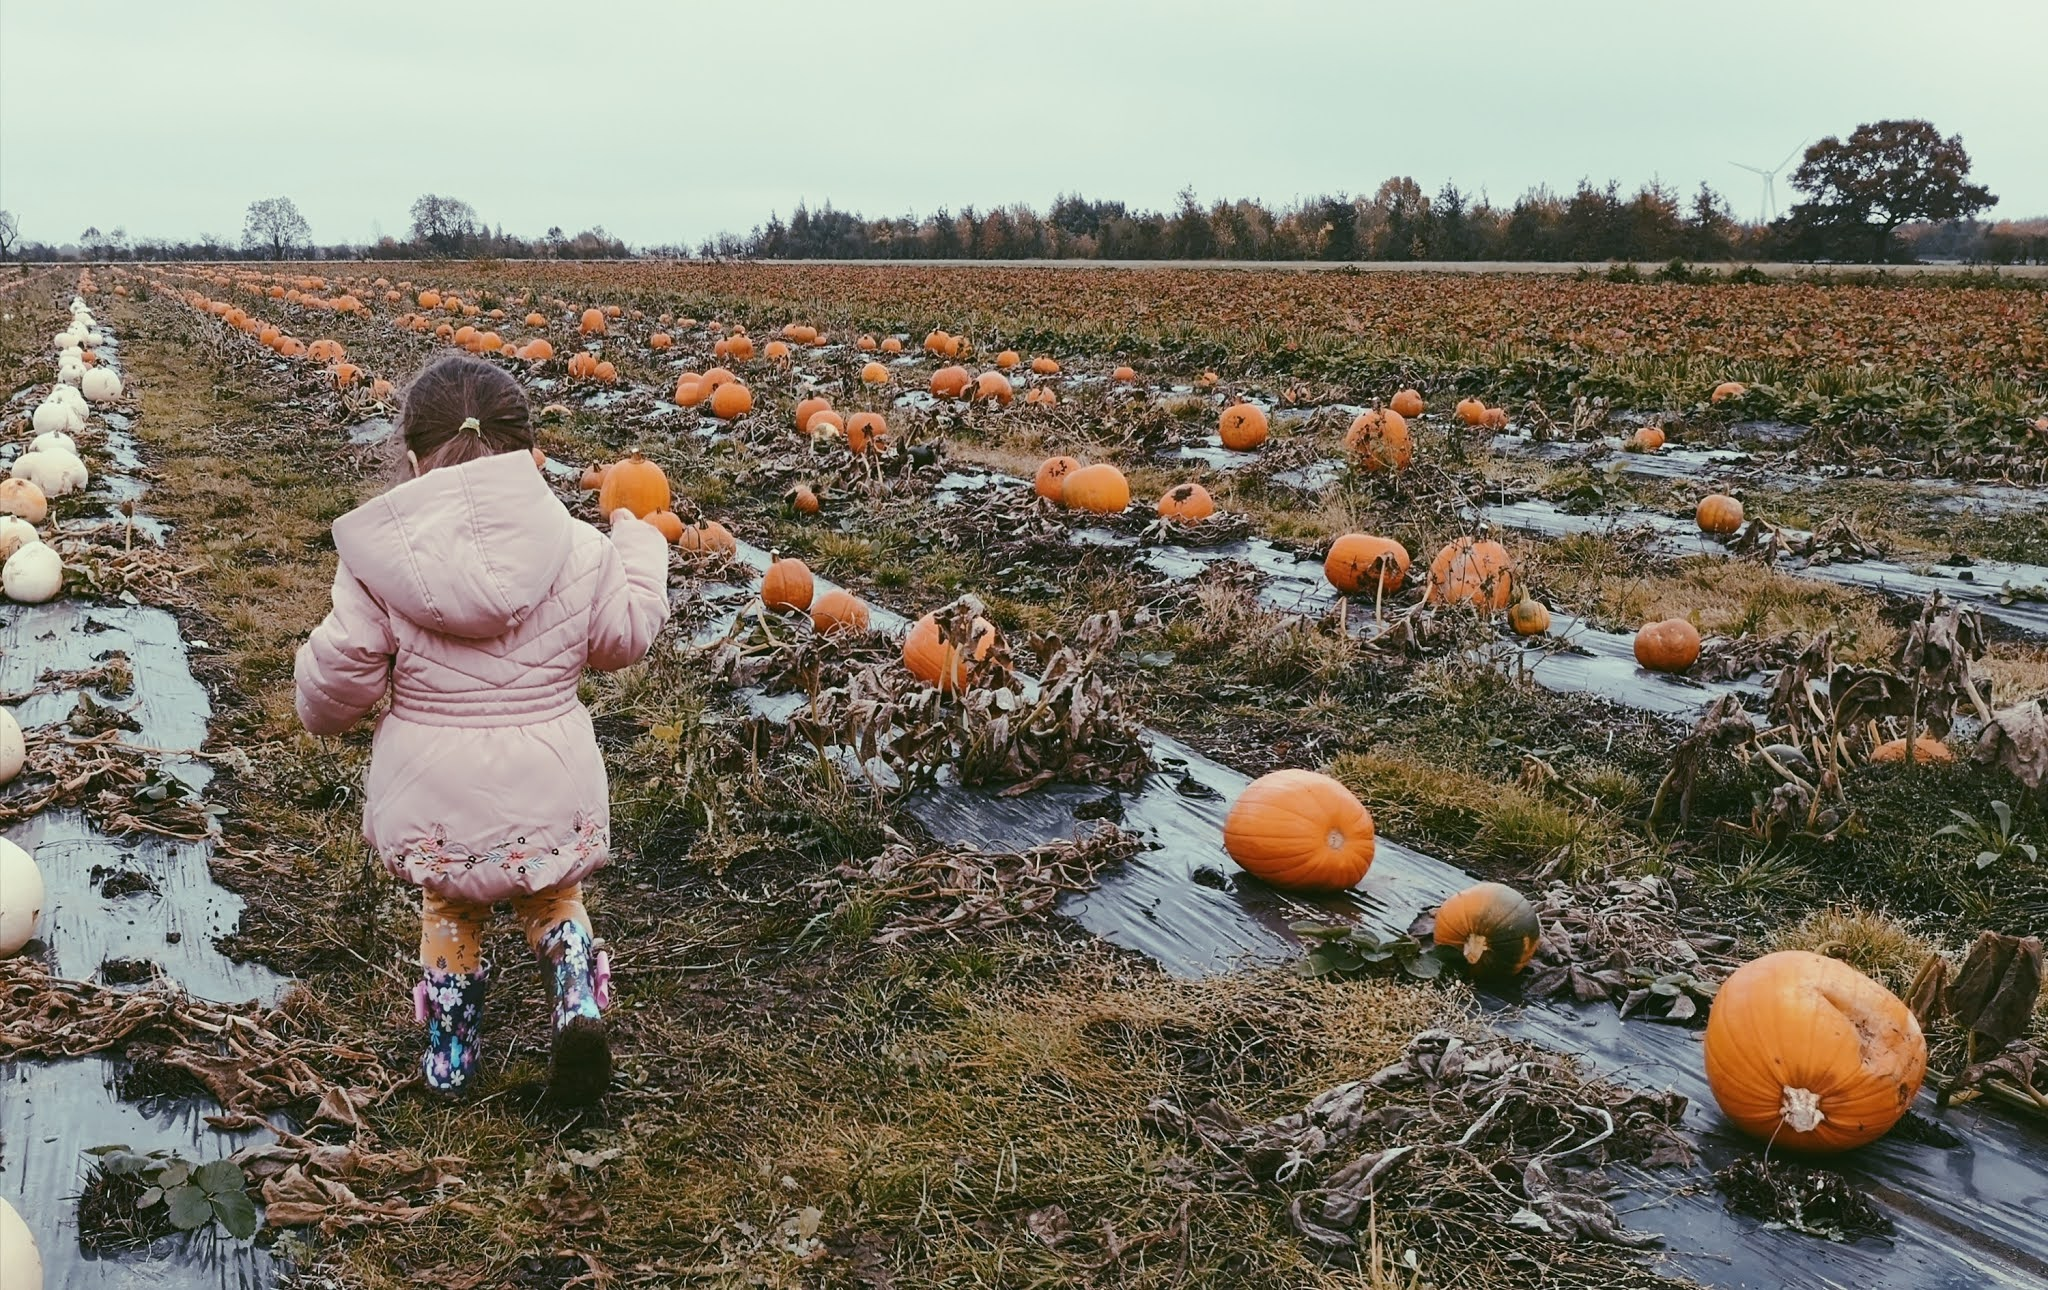 A picture of a toddler wearing floral wellies and leggings in a pale pink winter coat pumpkin picking at Wymeswold Fruit Farm on a grey, wet autumn afternoon.